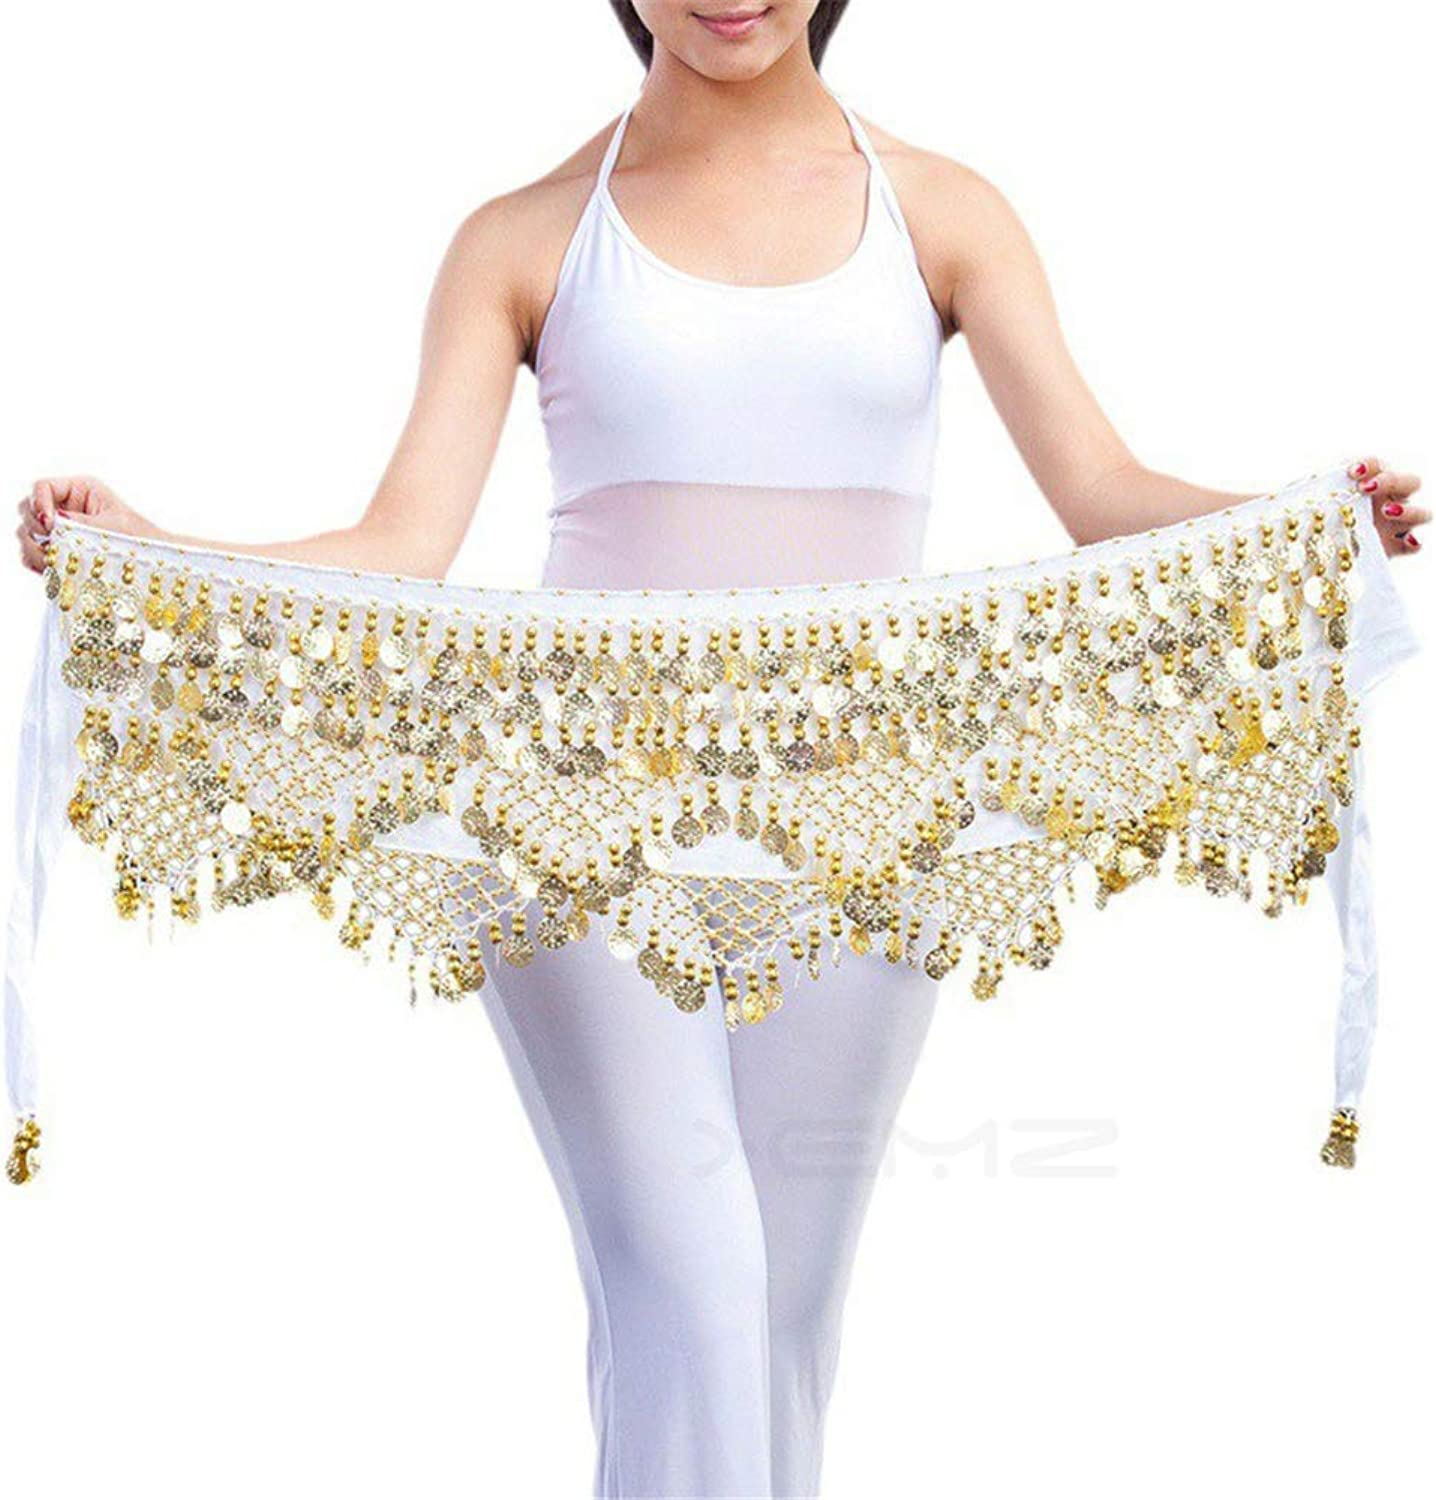 XEMZ Women's Belly Dancing Belt Hip Scarf with 320 Coins, Velvet Dance Waist Chain Wrap Skirt Straps, for Professional Dancers Performance, Costume Parties, Costume Belt Accessory Idea Gift